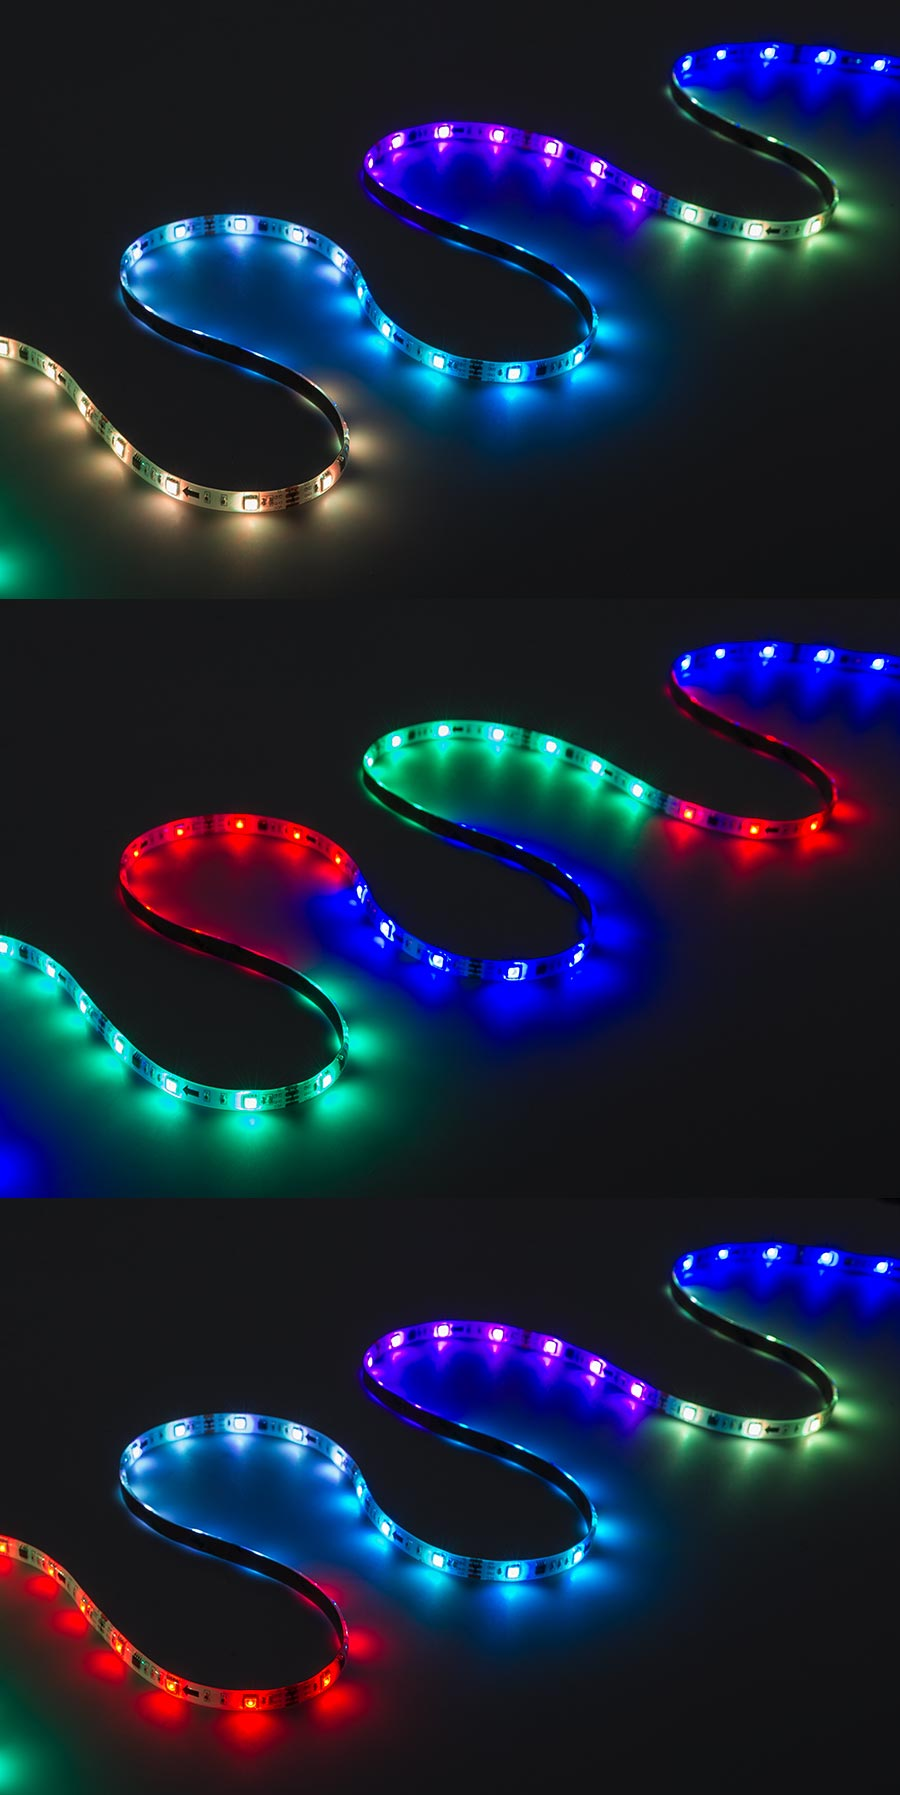 hight resolution of waterproof color chasing led light strips with multi color leds 16 40ft 5m outdoor led tape light with 18 smds ft 3 chip rgb smd led 5050 on showing